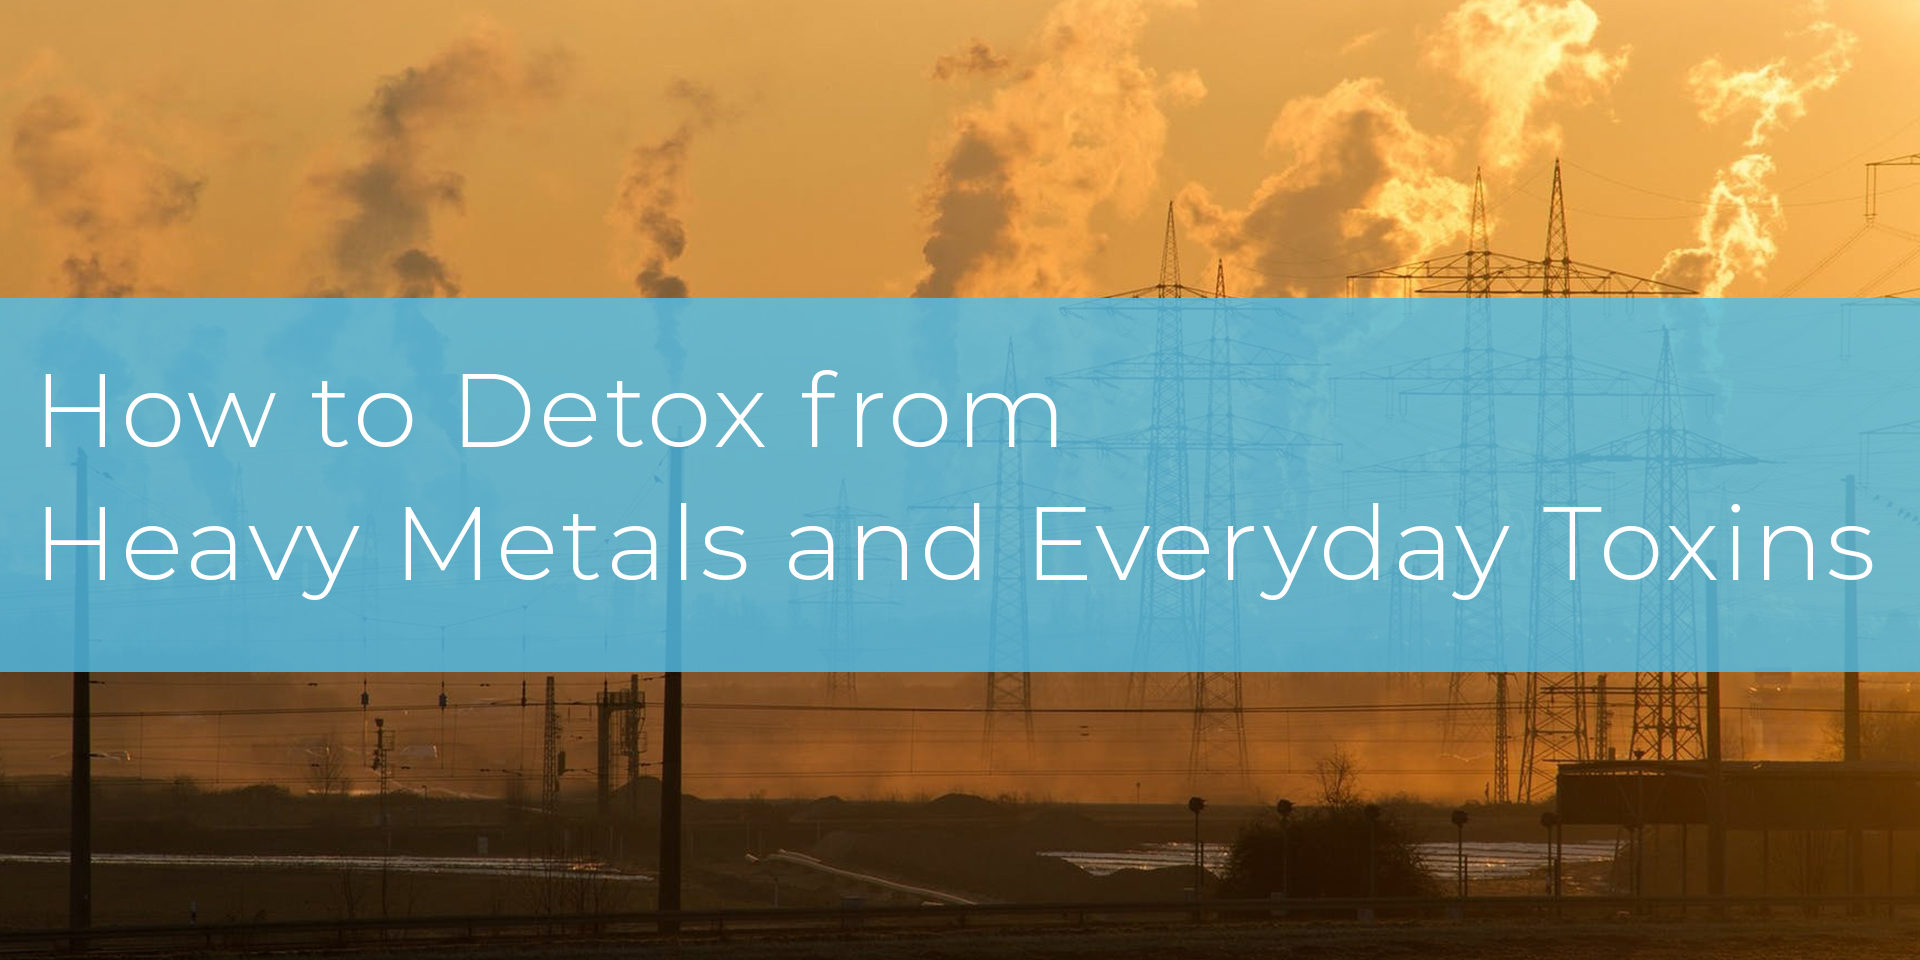 How to Detox from Heavy Metals and Everyday Toxins – Jason